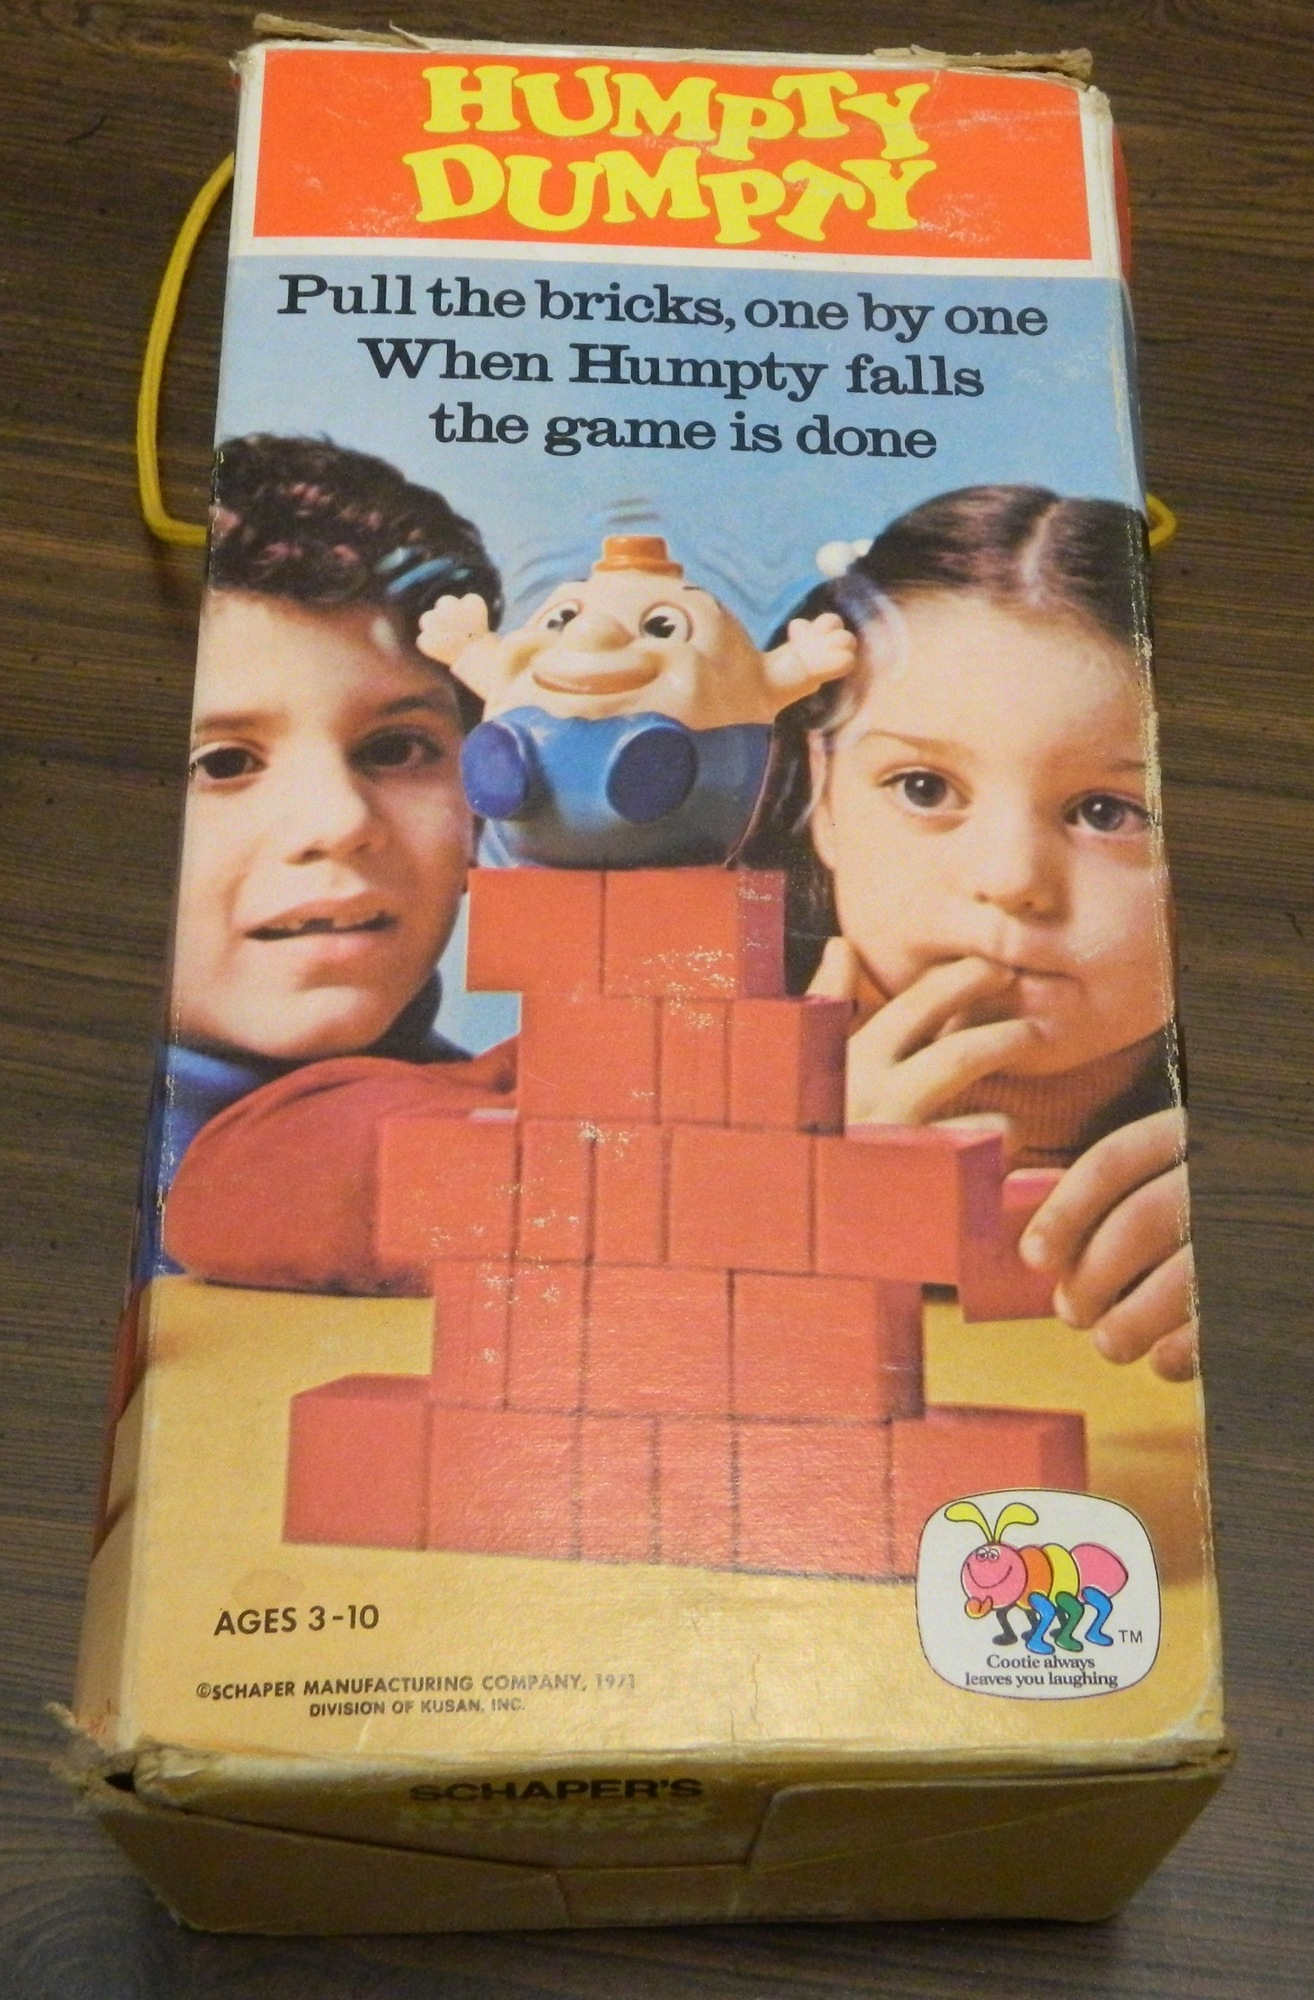 Box for Humpty Dumpty